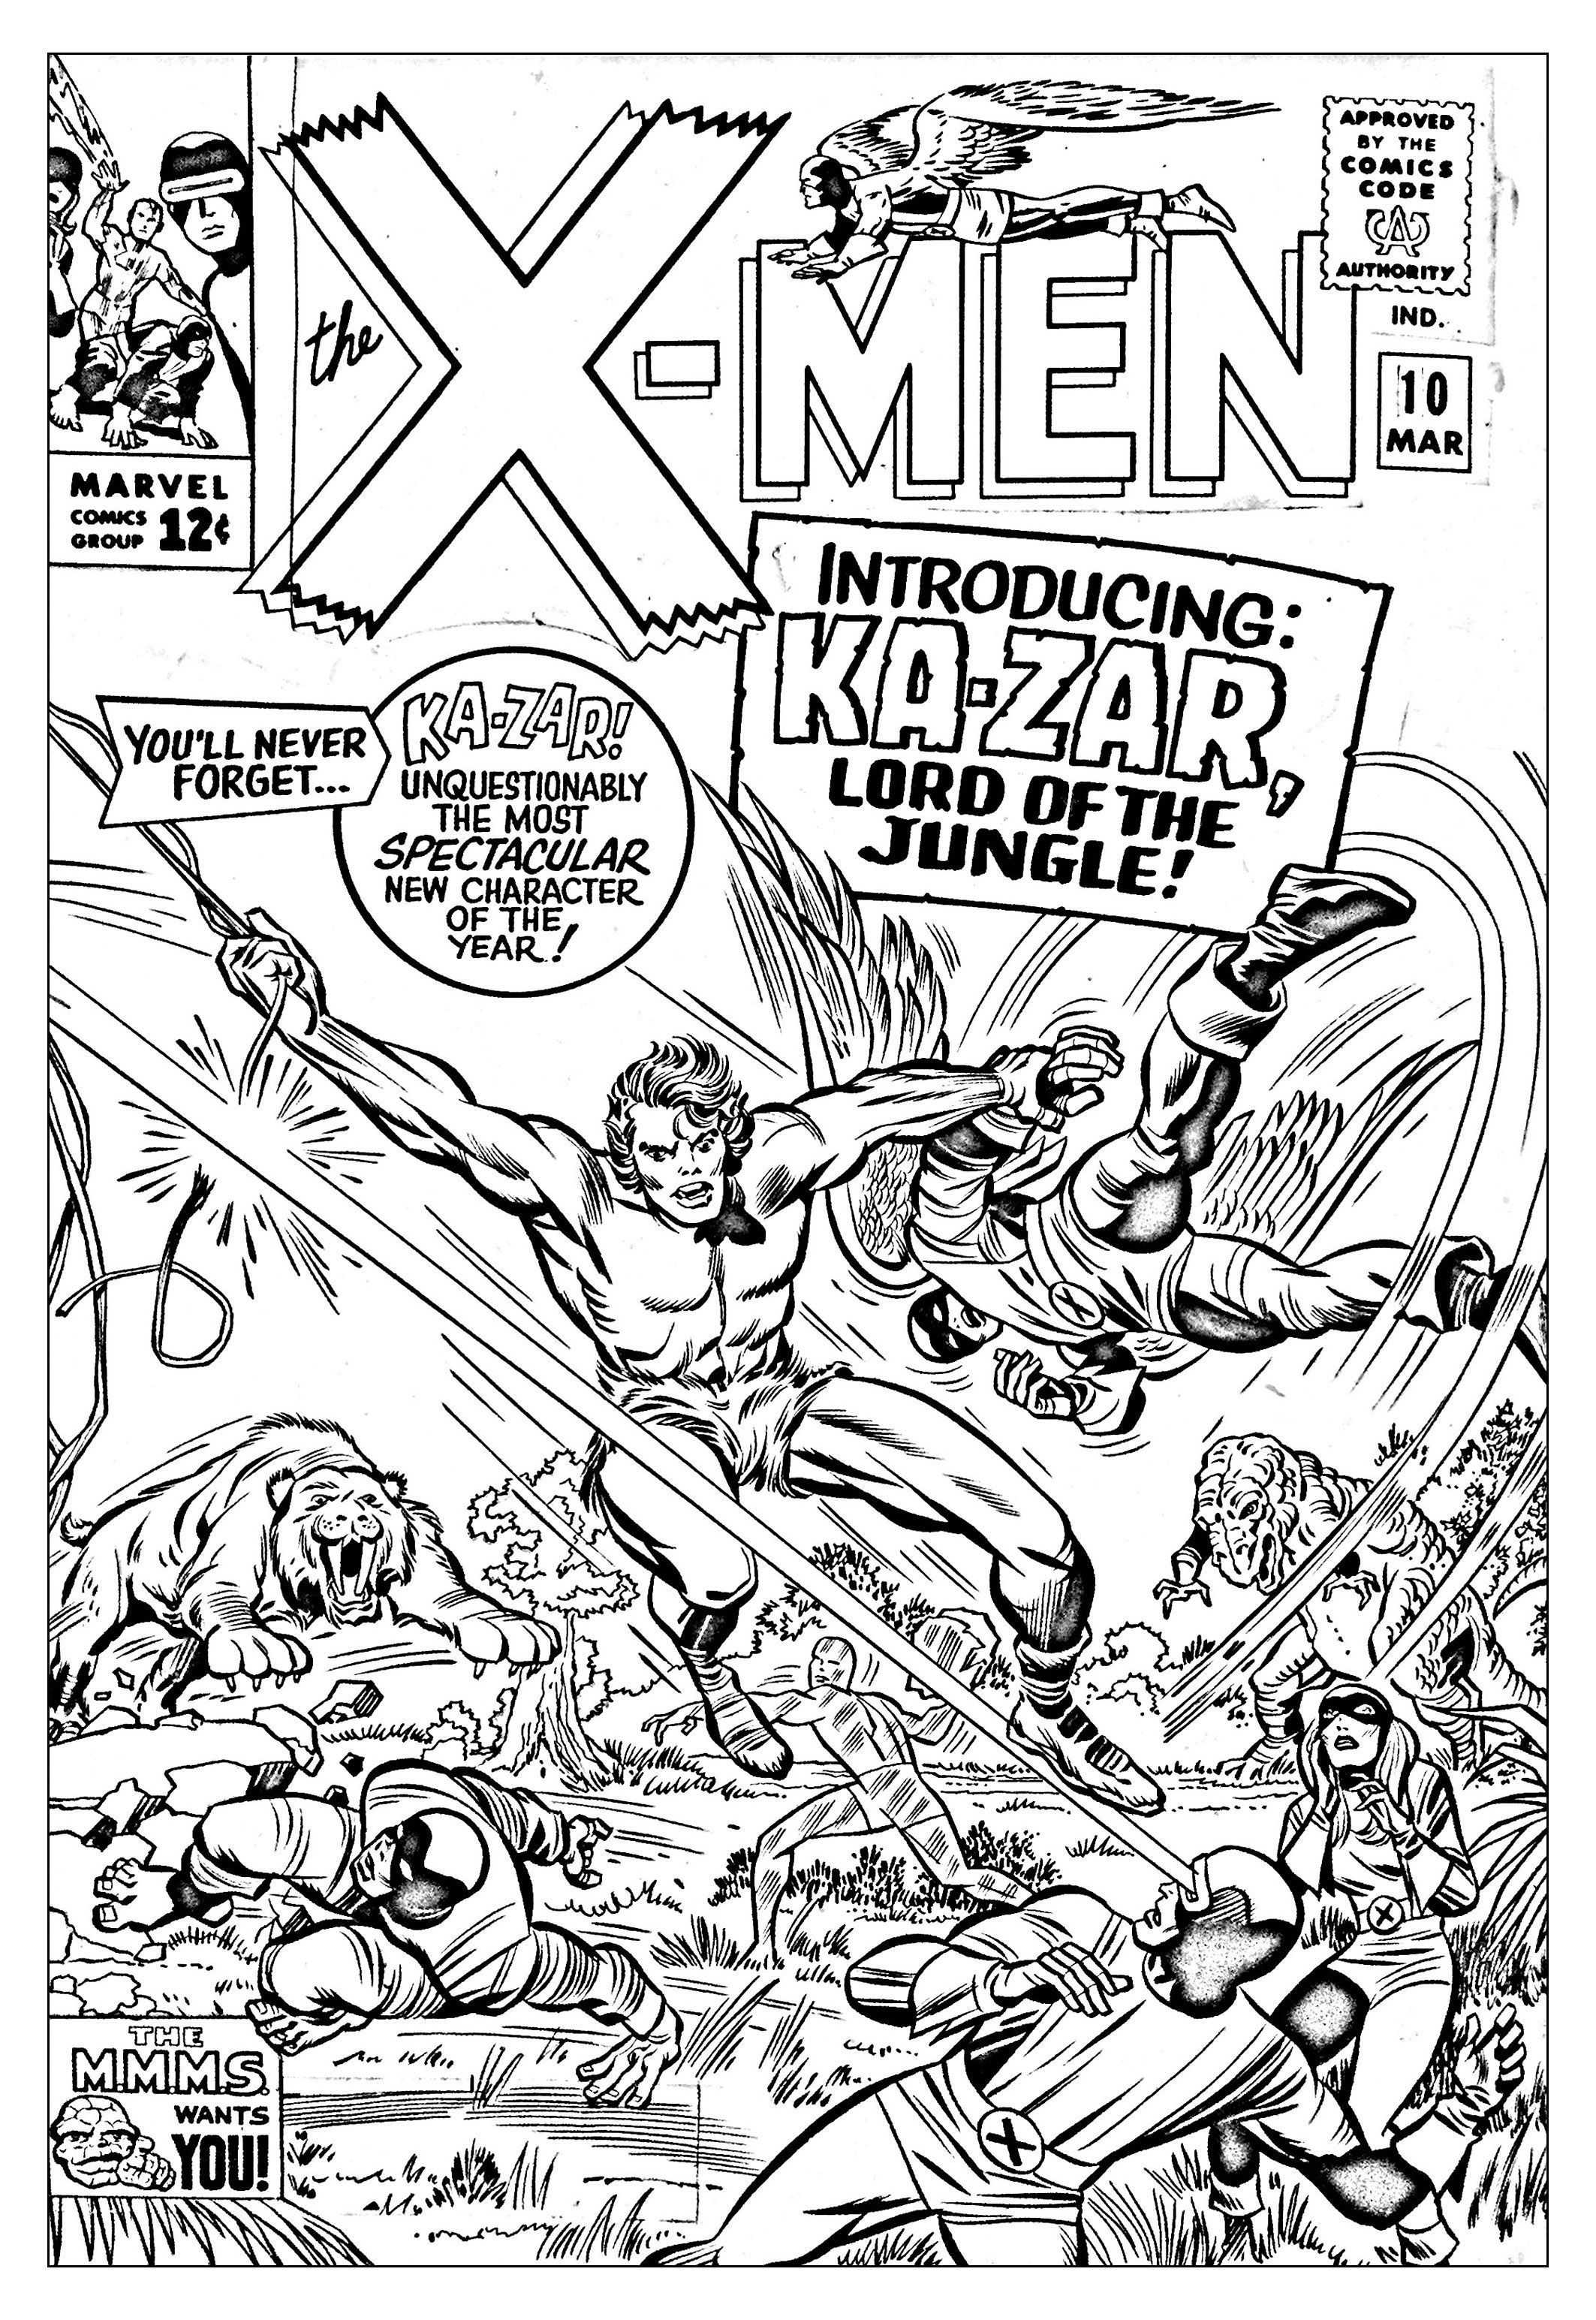 Comics Xmen 1965 Unreleased Cover From The Gallery Books